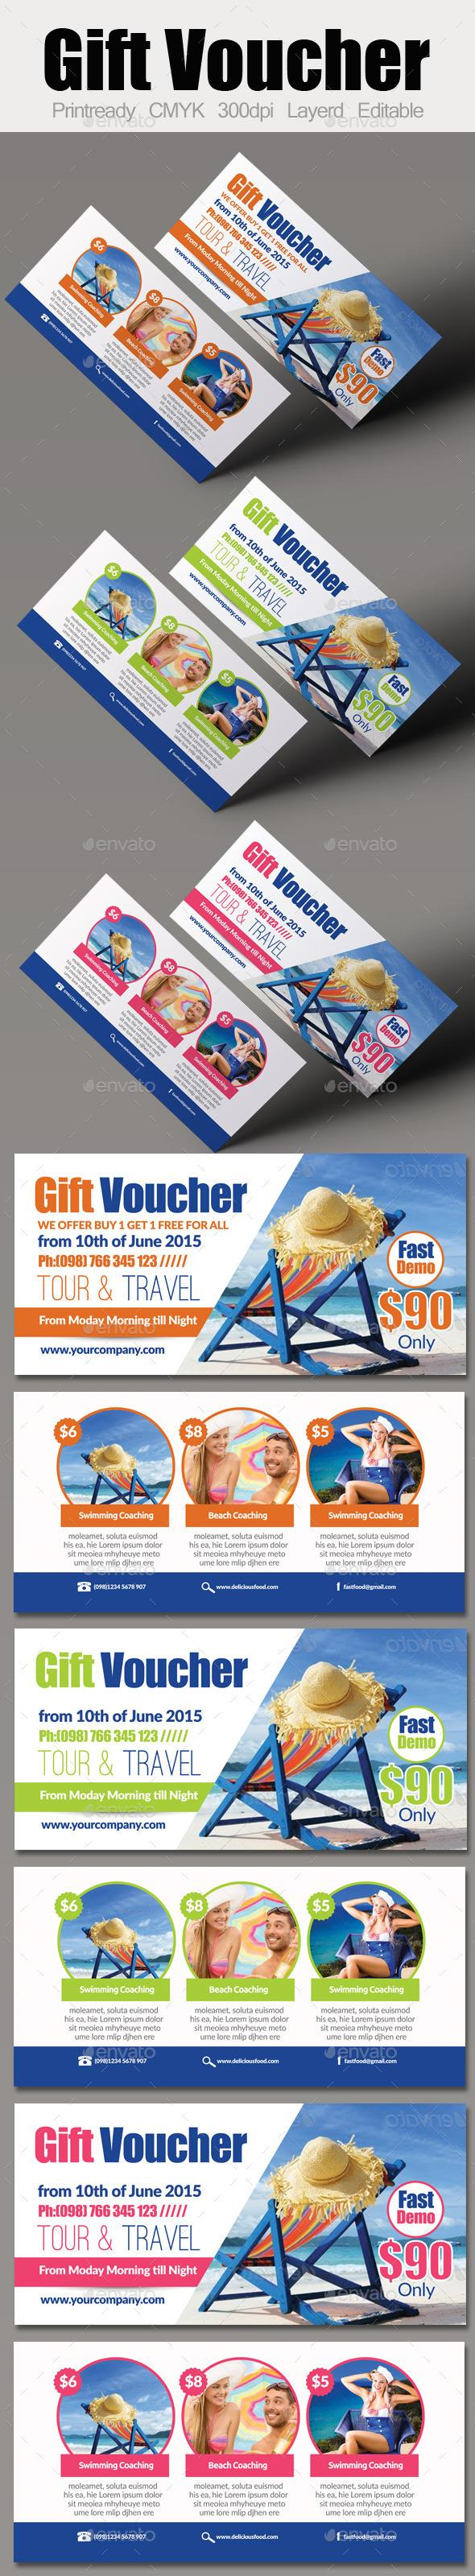 tour travel gift voucher pinterest travel gifts card printing